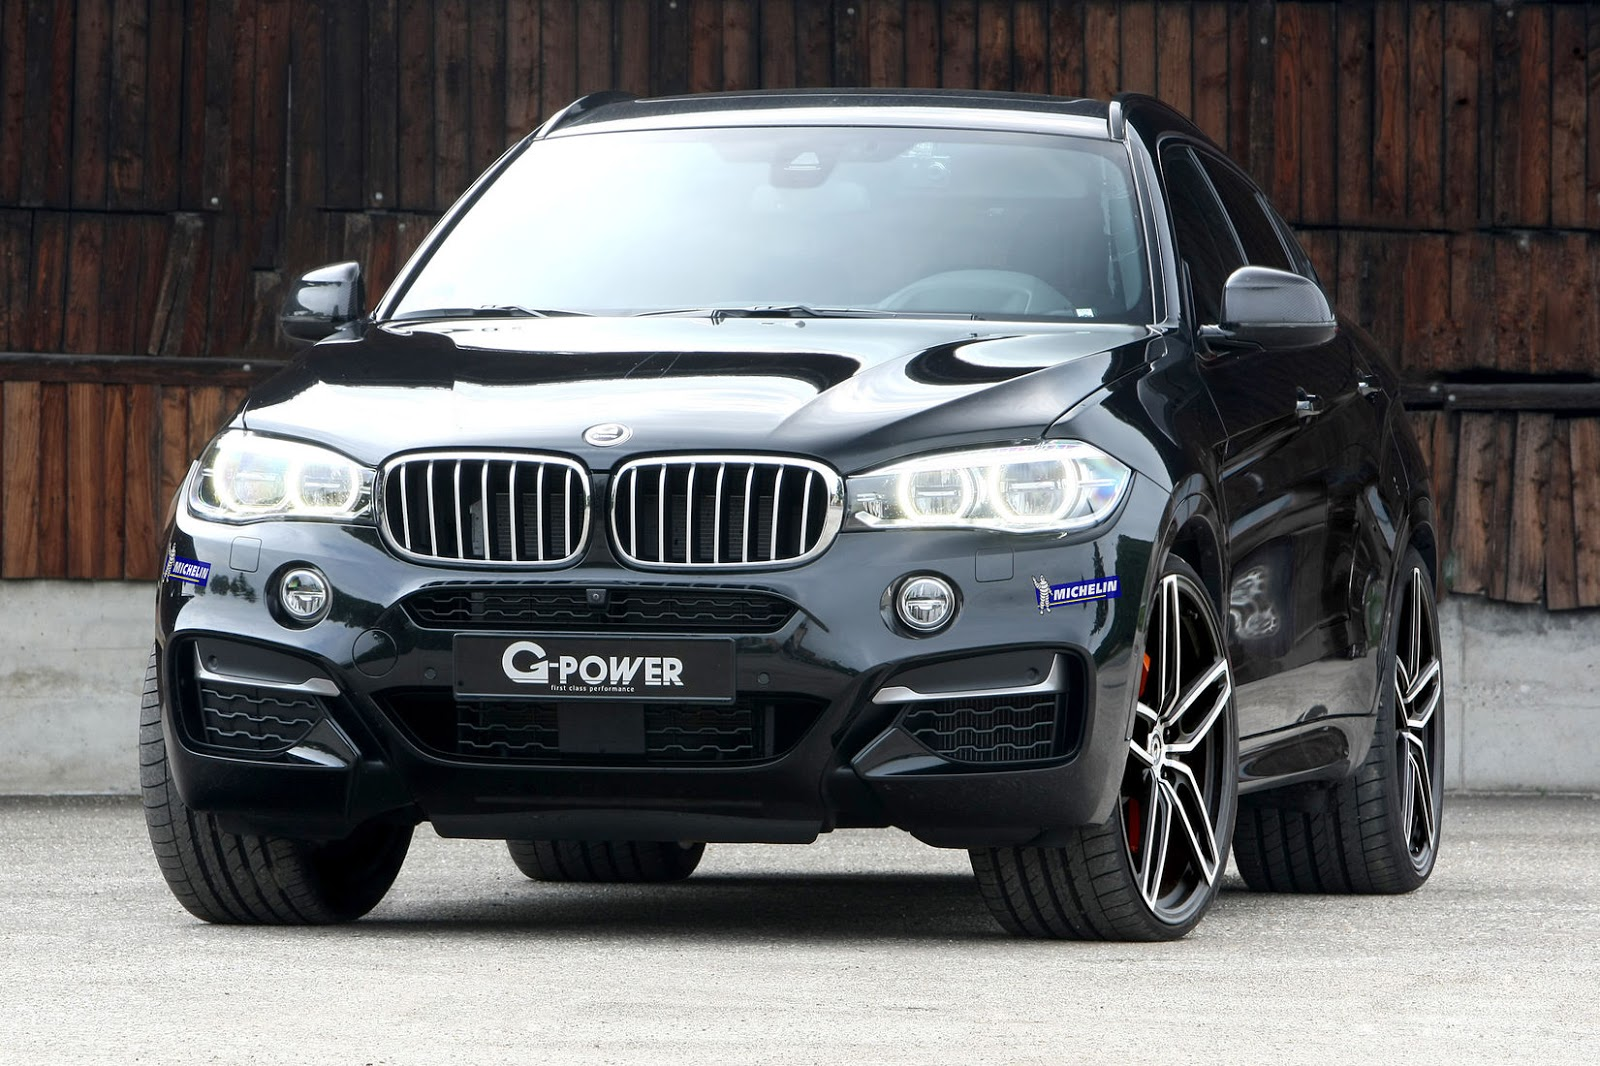 g power finds bmw x6 m50d 39 s sweet spot with 455 diesel. Black Bedroom Furniture Sets. Home Design Ideas